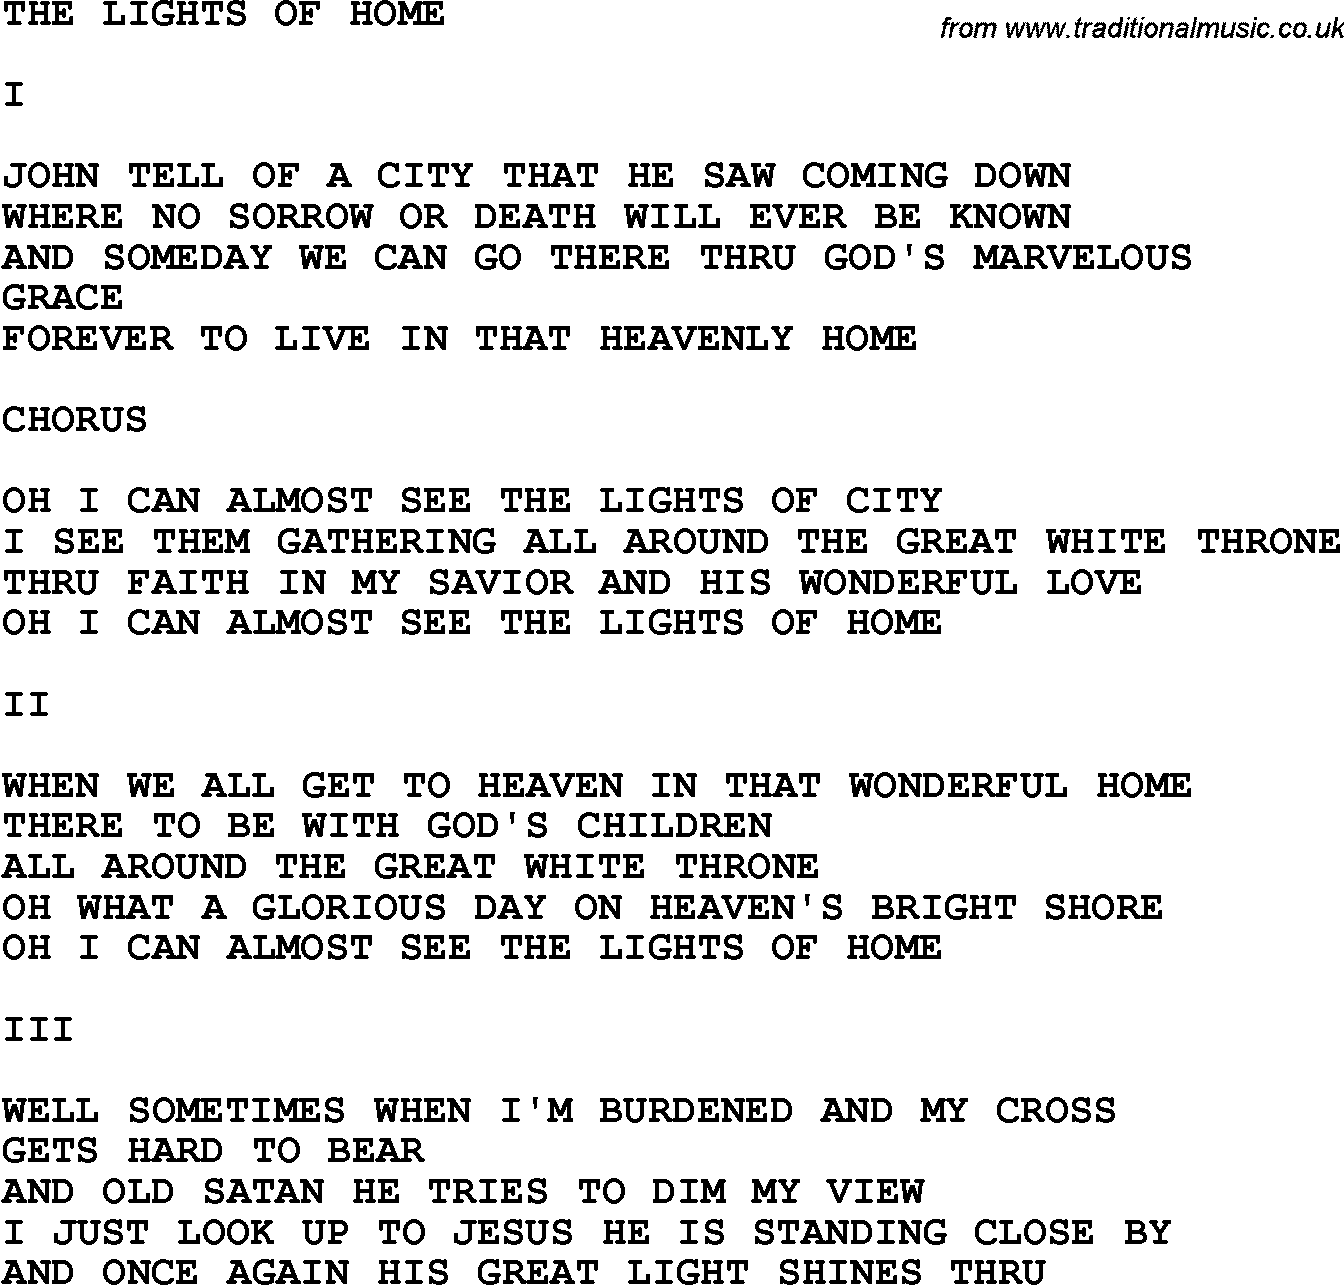 Country, Southern and Bluegrass Gospel Song The Lights Of Home lyrics